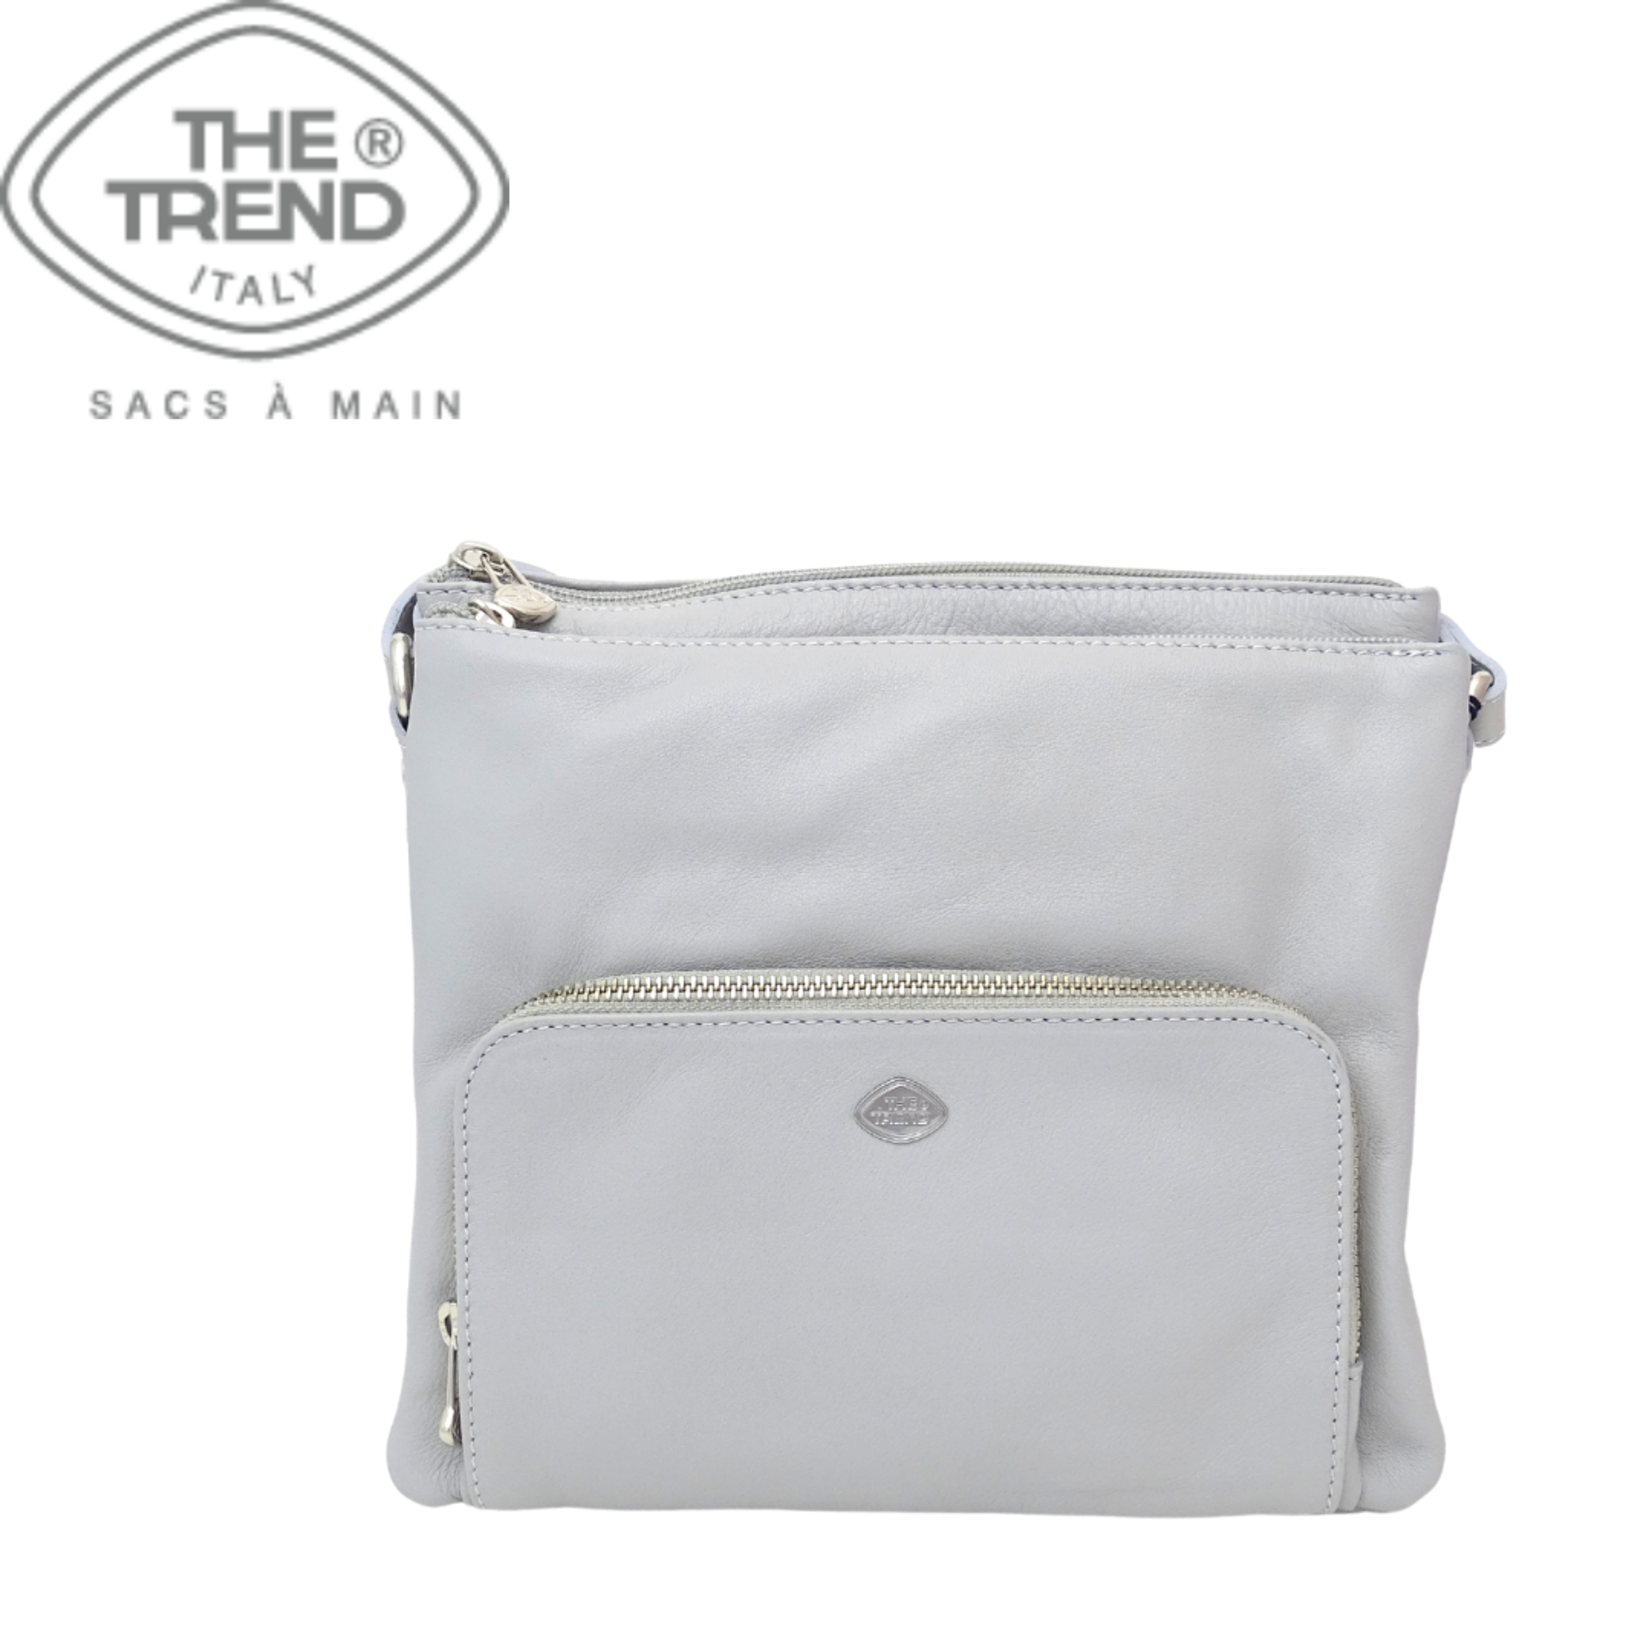 The Trend The Trend 078055 light grey